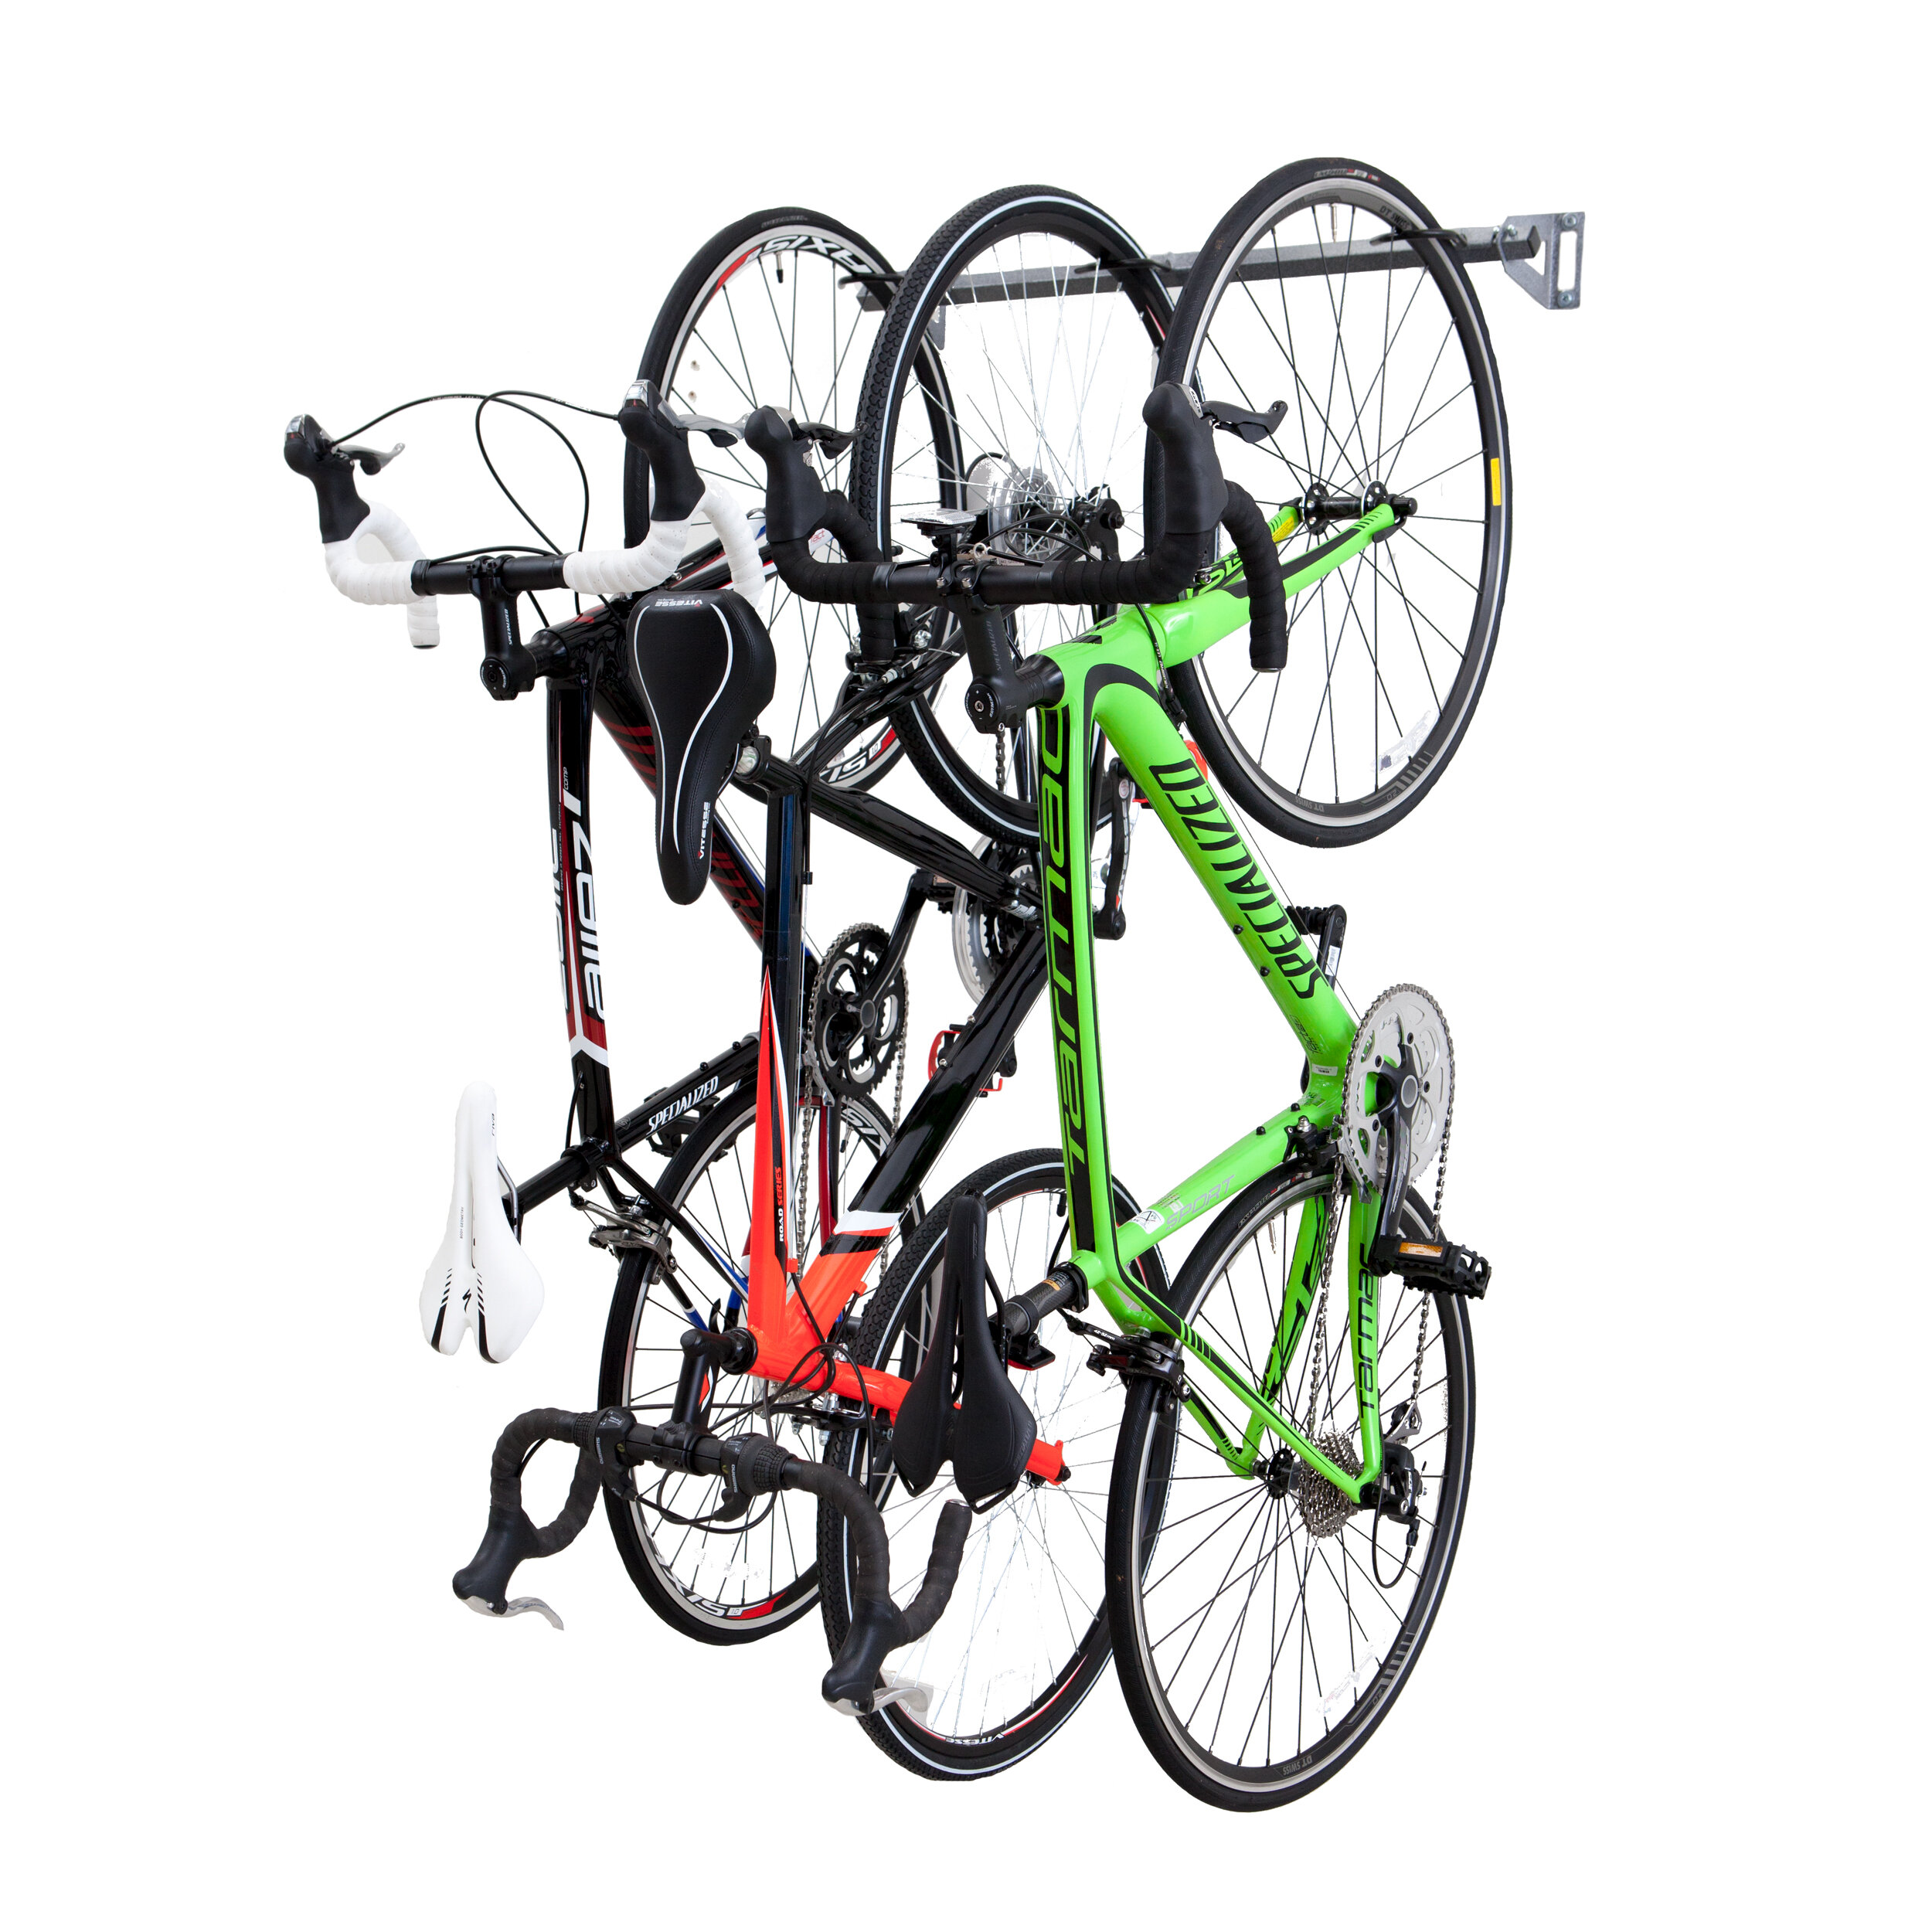 system way for wall multiple hang without dahanger in hanging rhyoutubecom s bike a rack garage your to or easy pulley